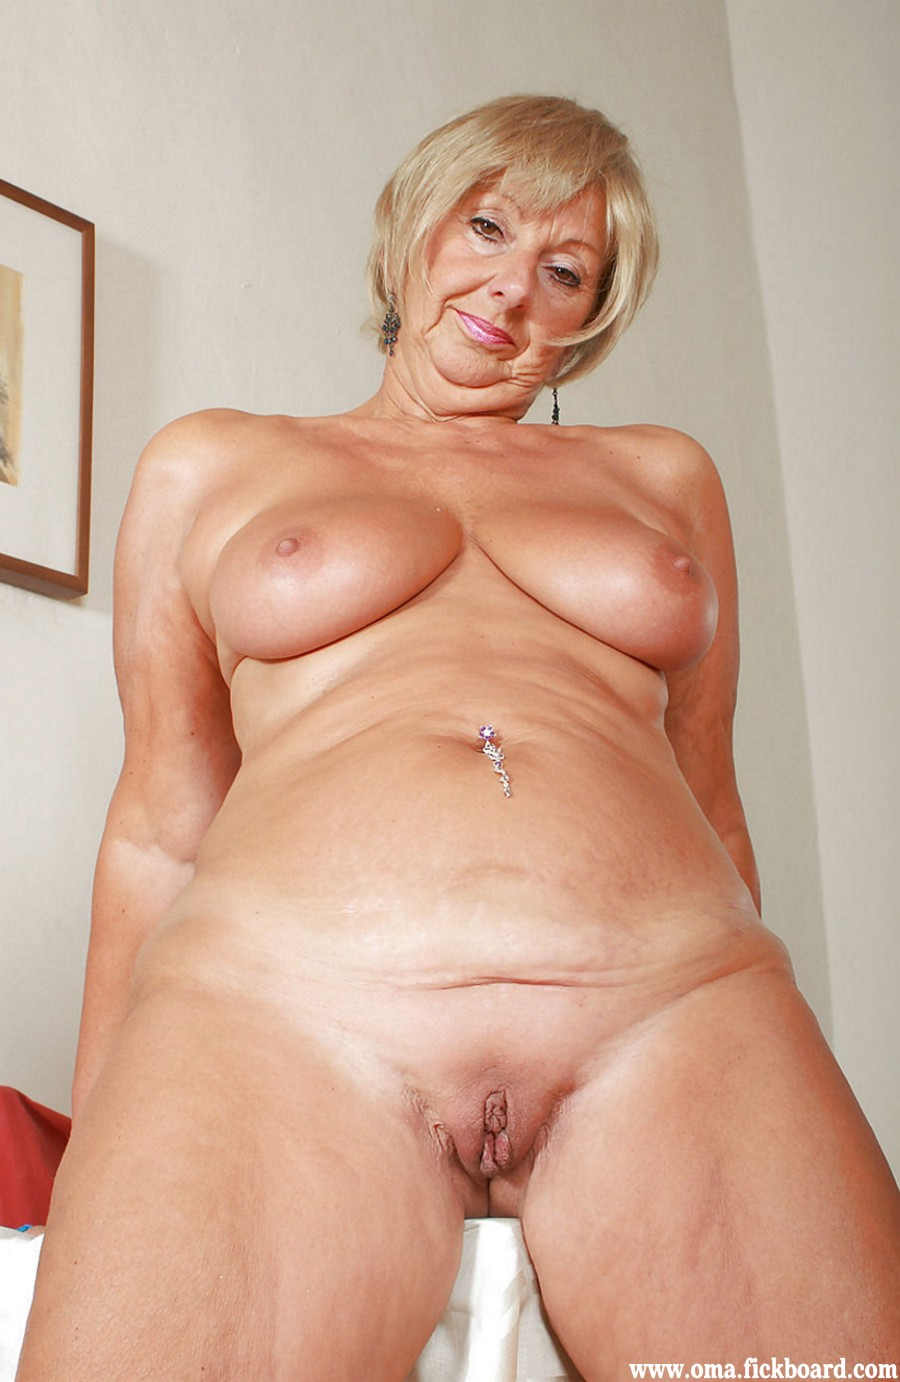 Horny dildo grannies wanting a date